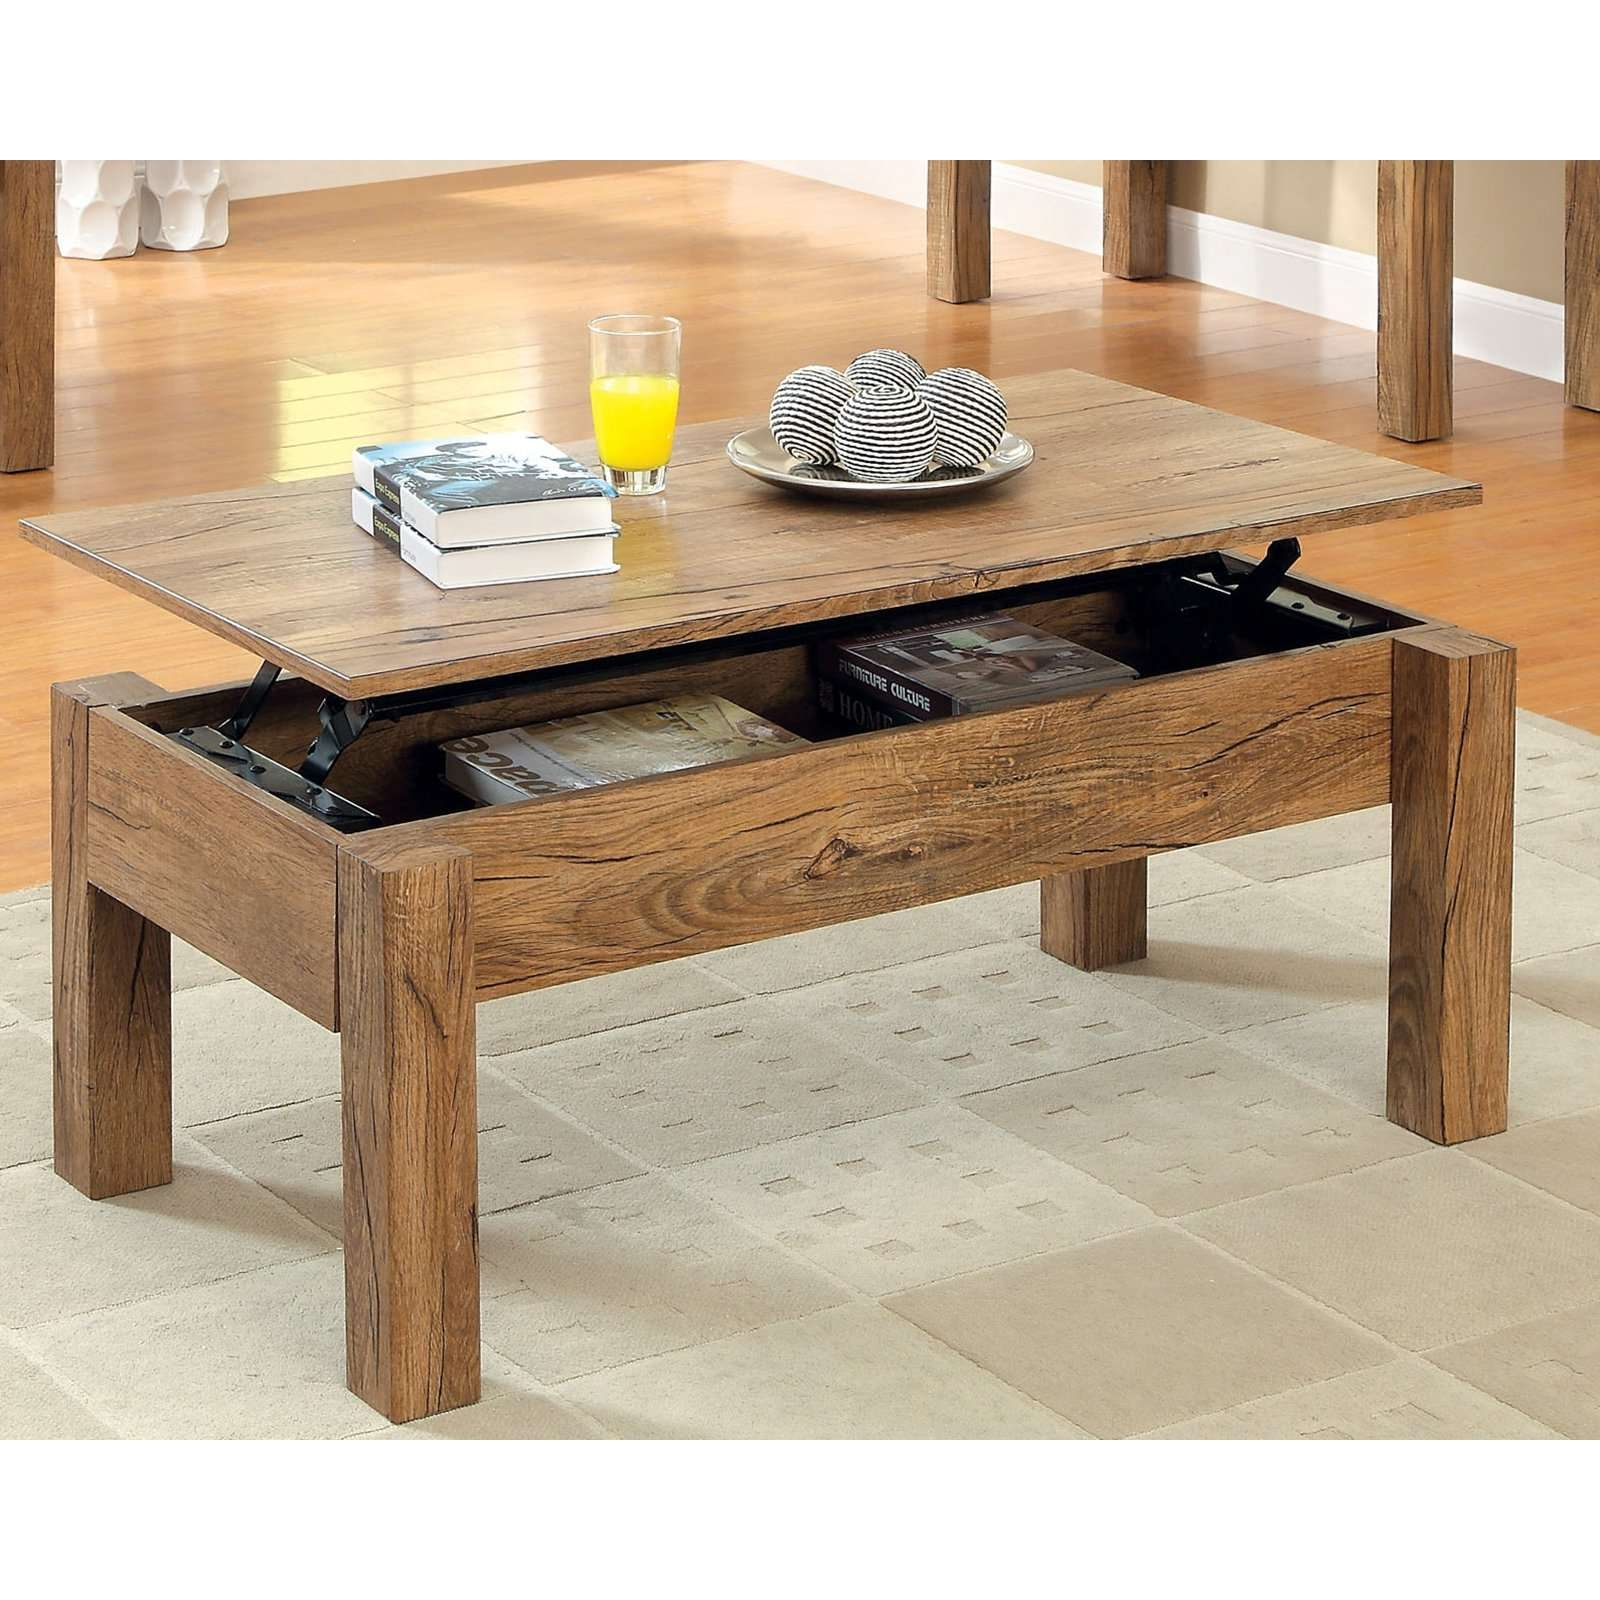 2017 Glass Lift Top Coffee Tables Regarding Coffee Tables : Small Square Coffee Table Brown Lift Top Rustic (View 2 of 20)